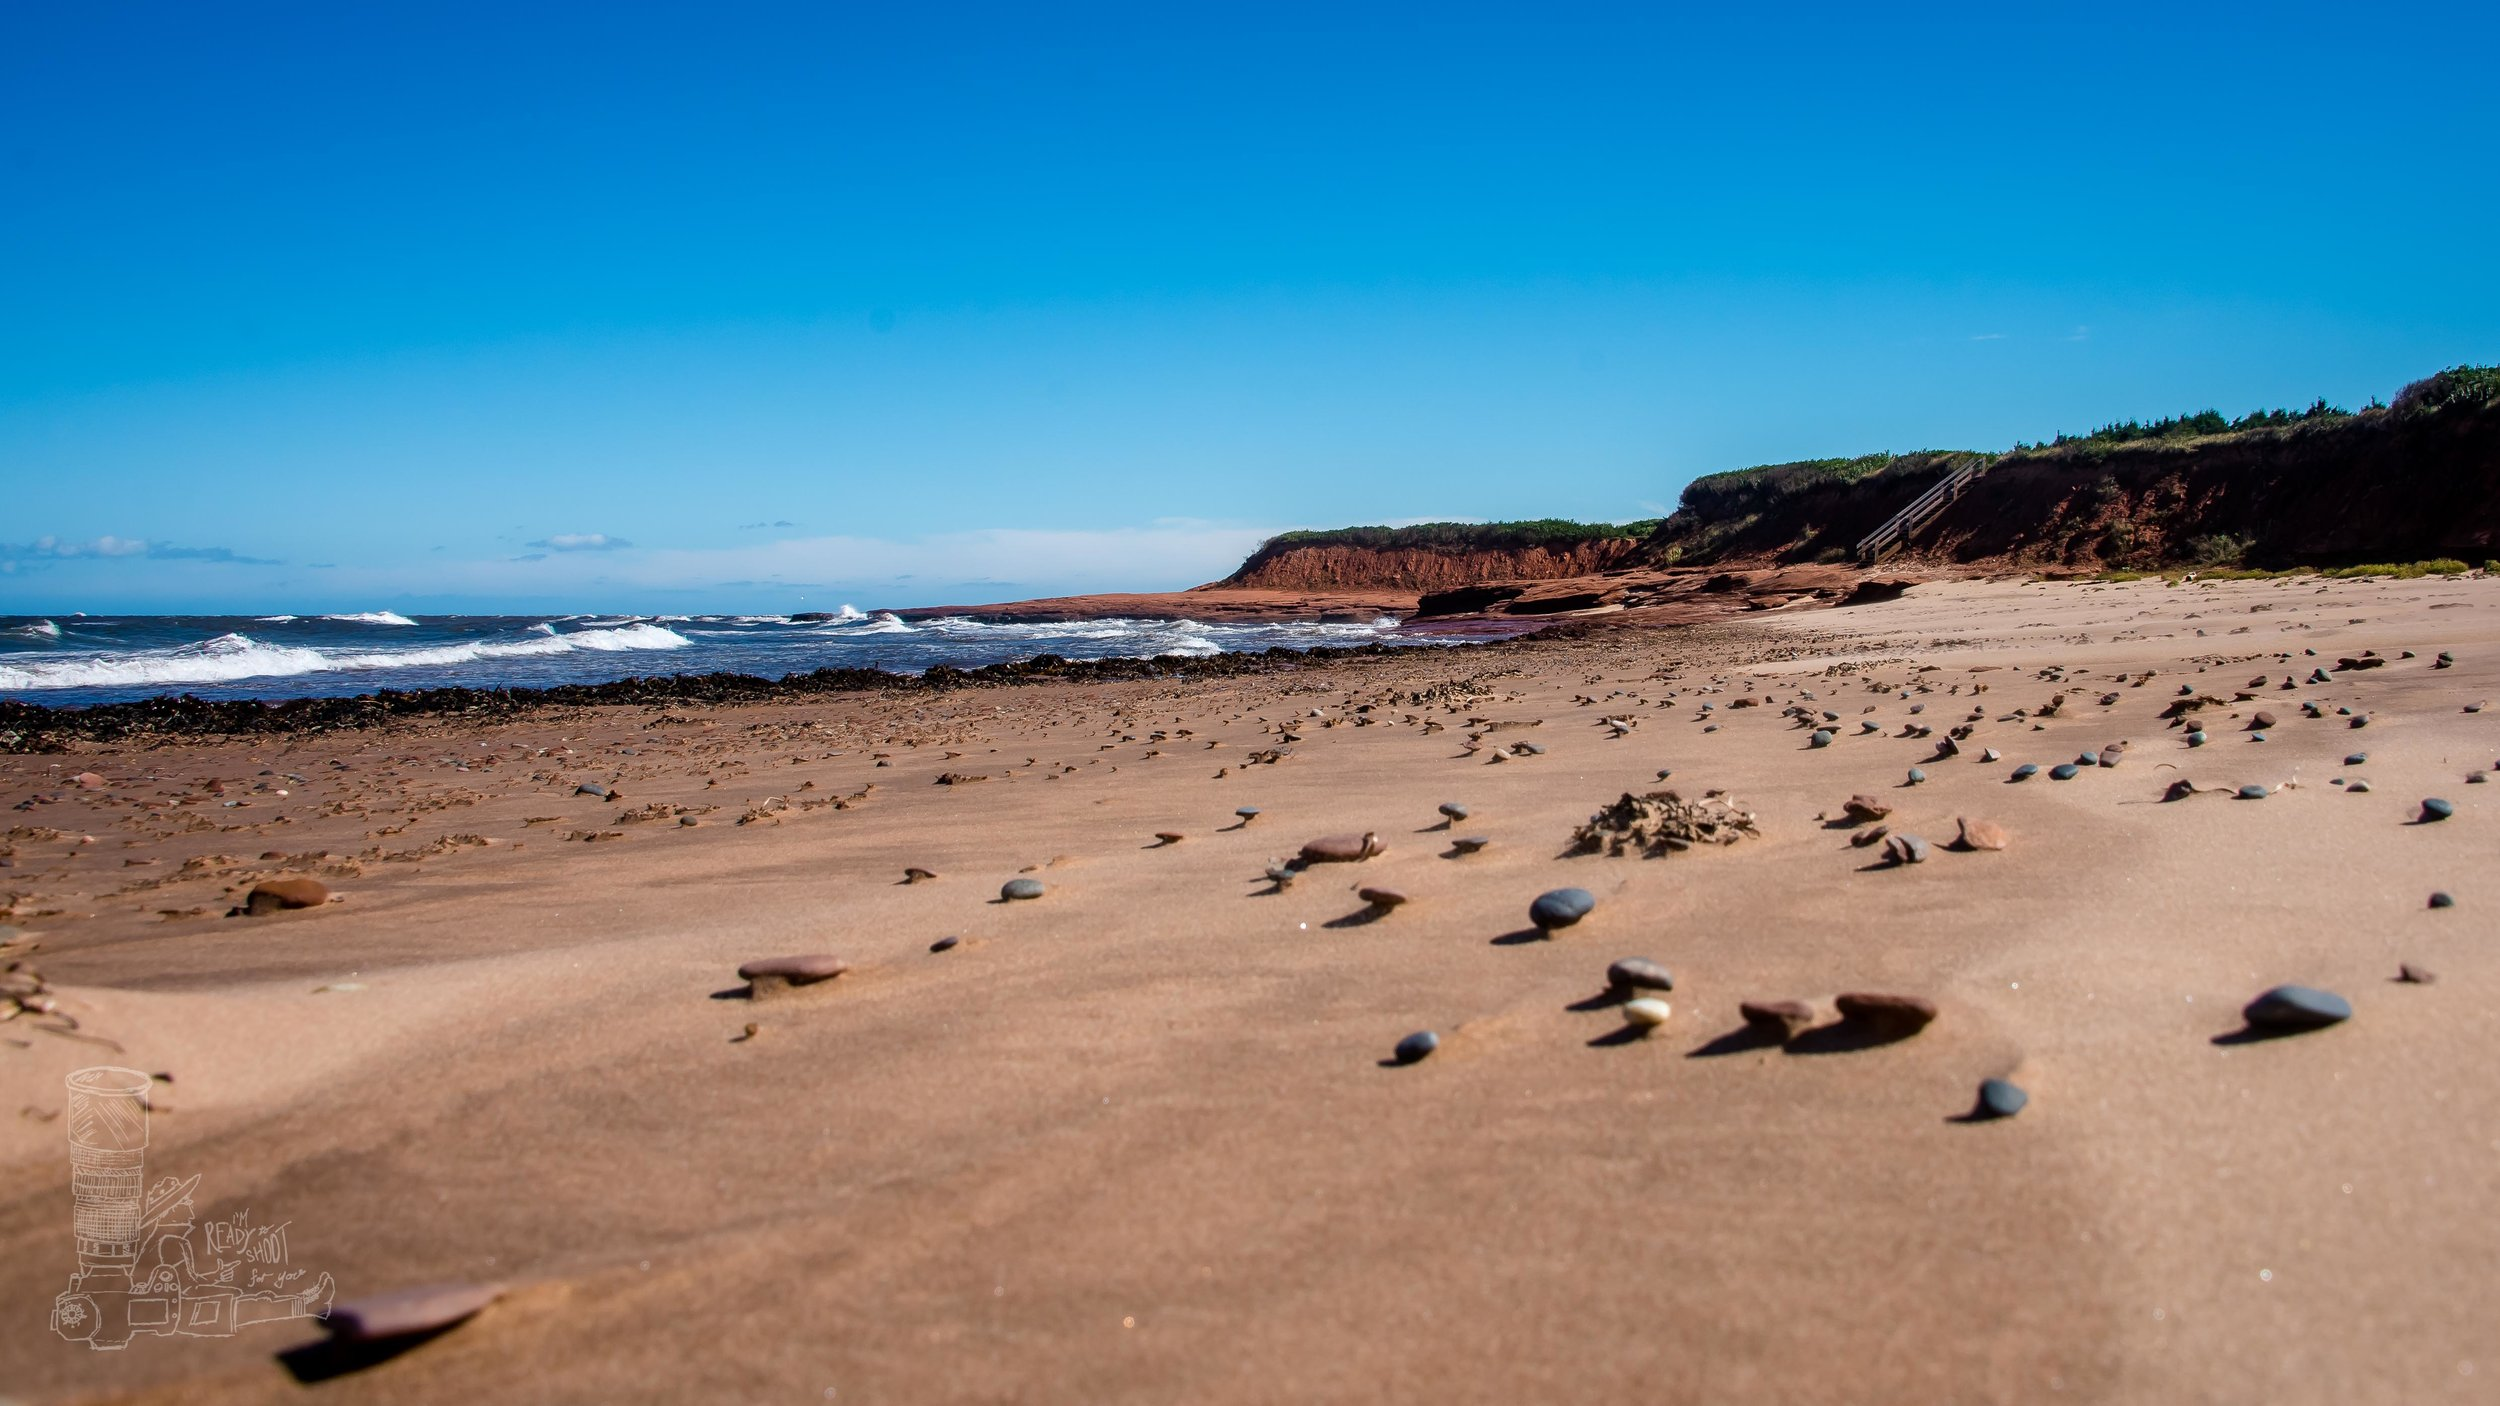 The Red Beaches of PEI